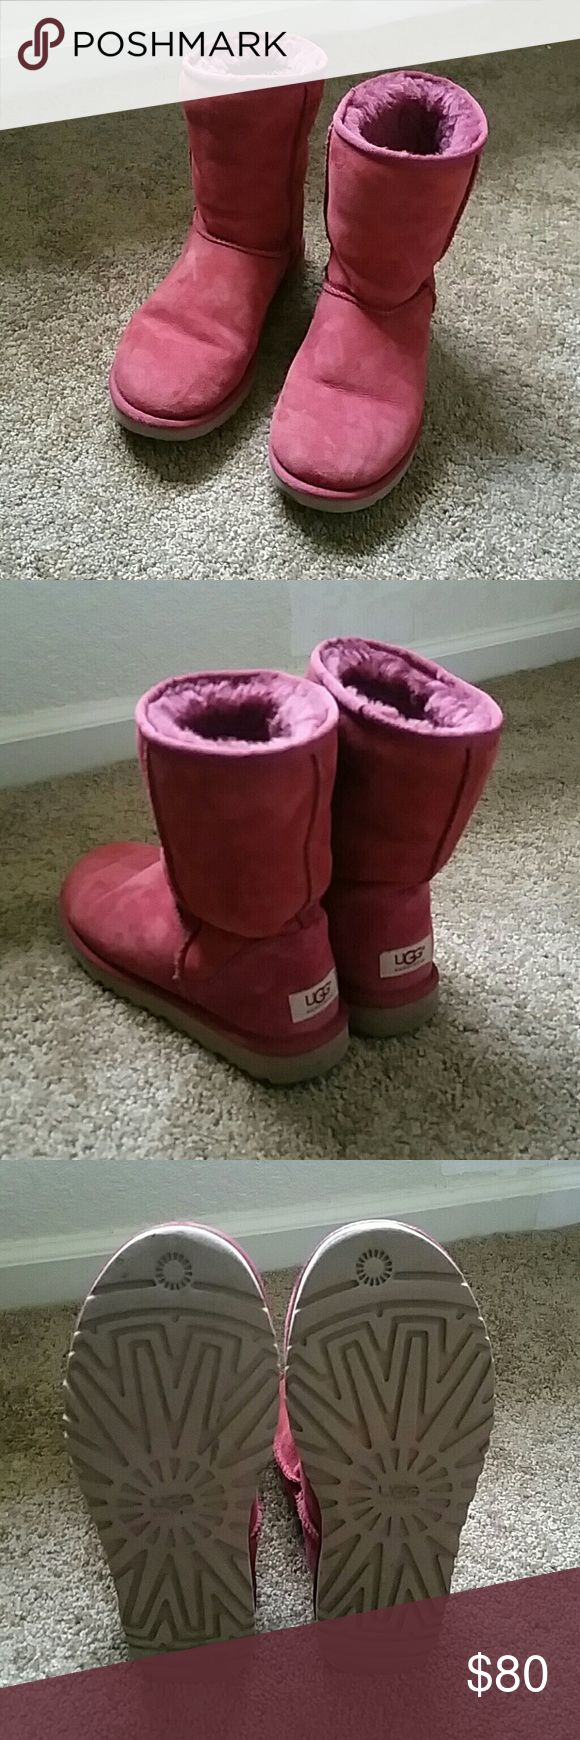 Classic short UGG boots Raspberry color, size 8, very good condition UGG Shoes Winter & Rain Boots